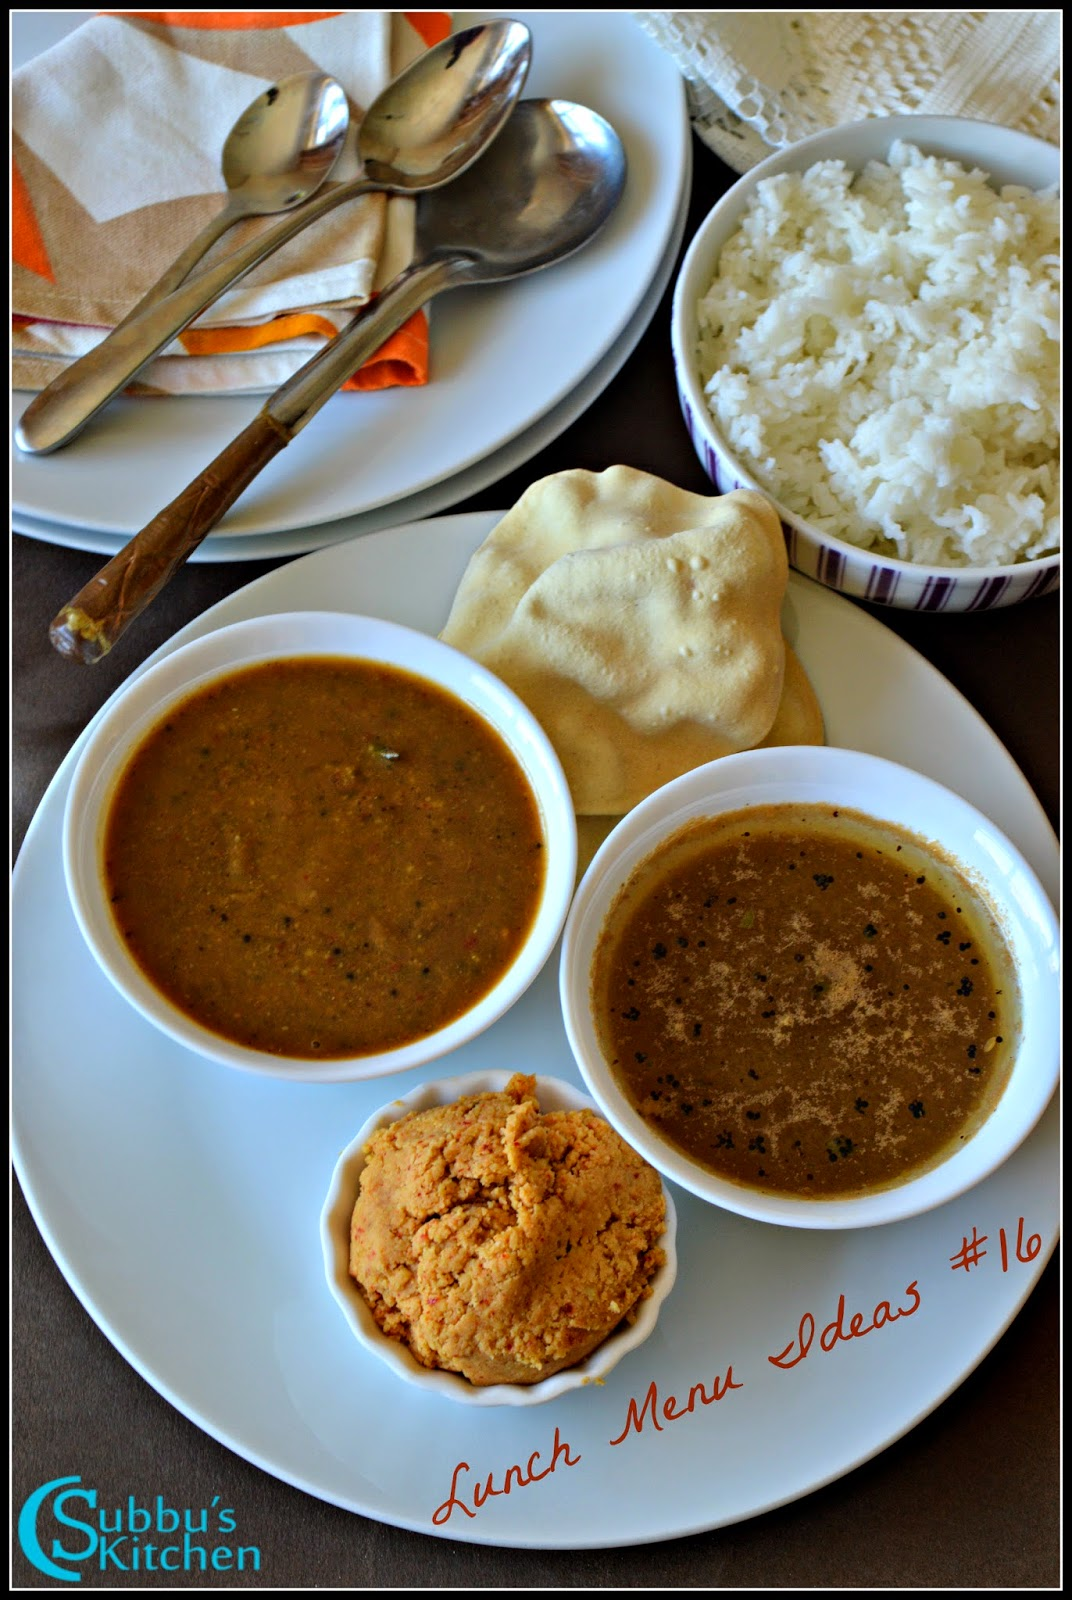 South Indian Lunch Menu 16 - Milagu Kuzhambu, Paruppu Thugayal, Jeera Rasam, Appalam and Rice